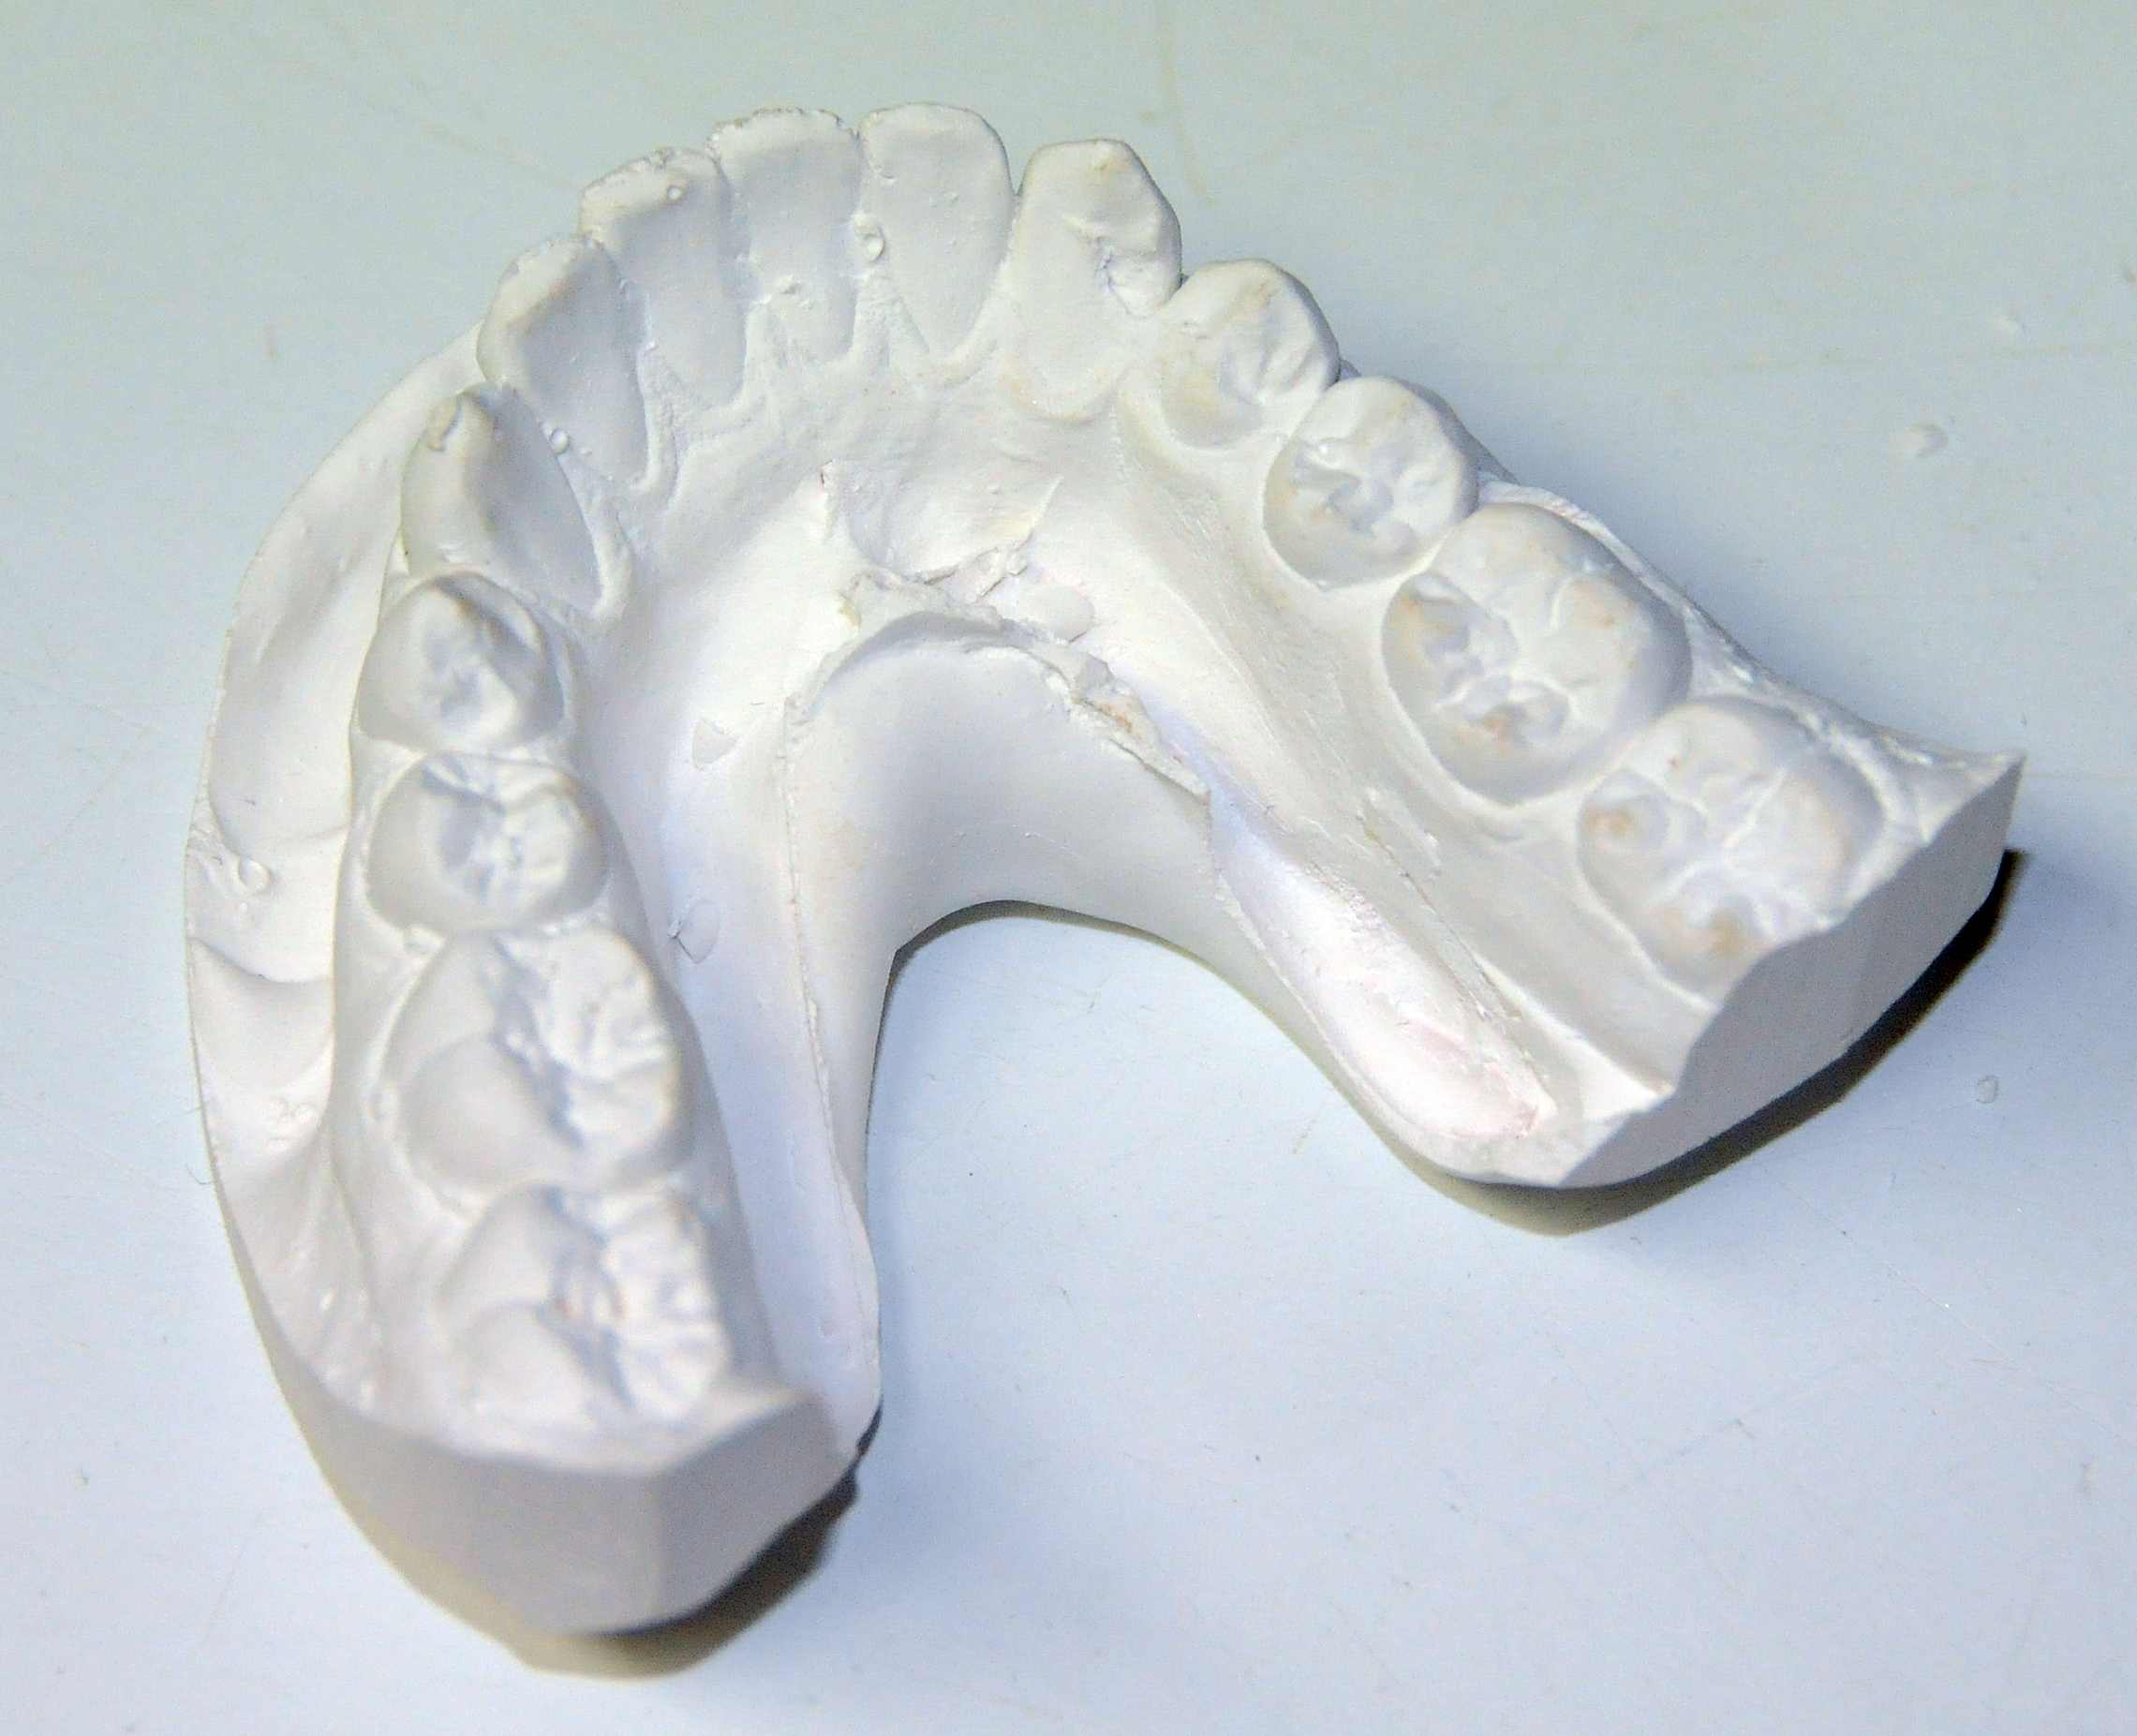 How are Orthodontic Hawley Retainers Made? | Ask an Orthodontist.com